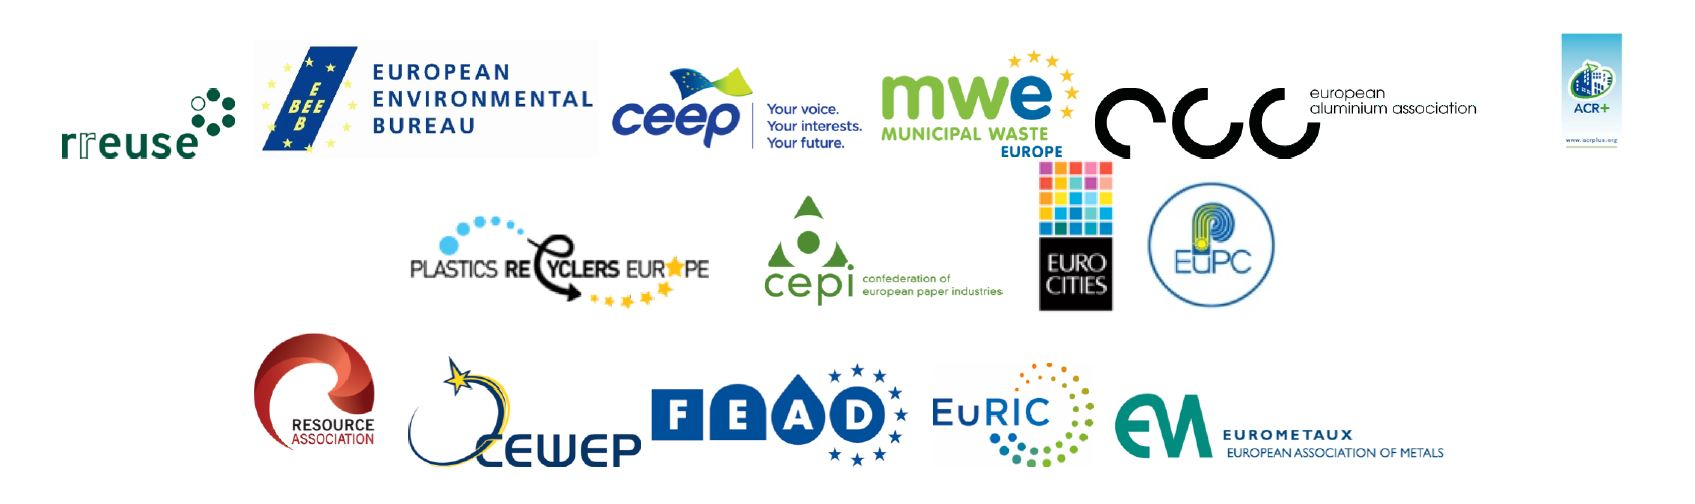 Open letter to Jean-Claude Juncker on the withdrawal and renewed discussion of the circular economy package